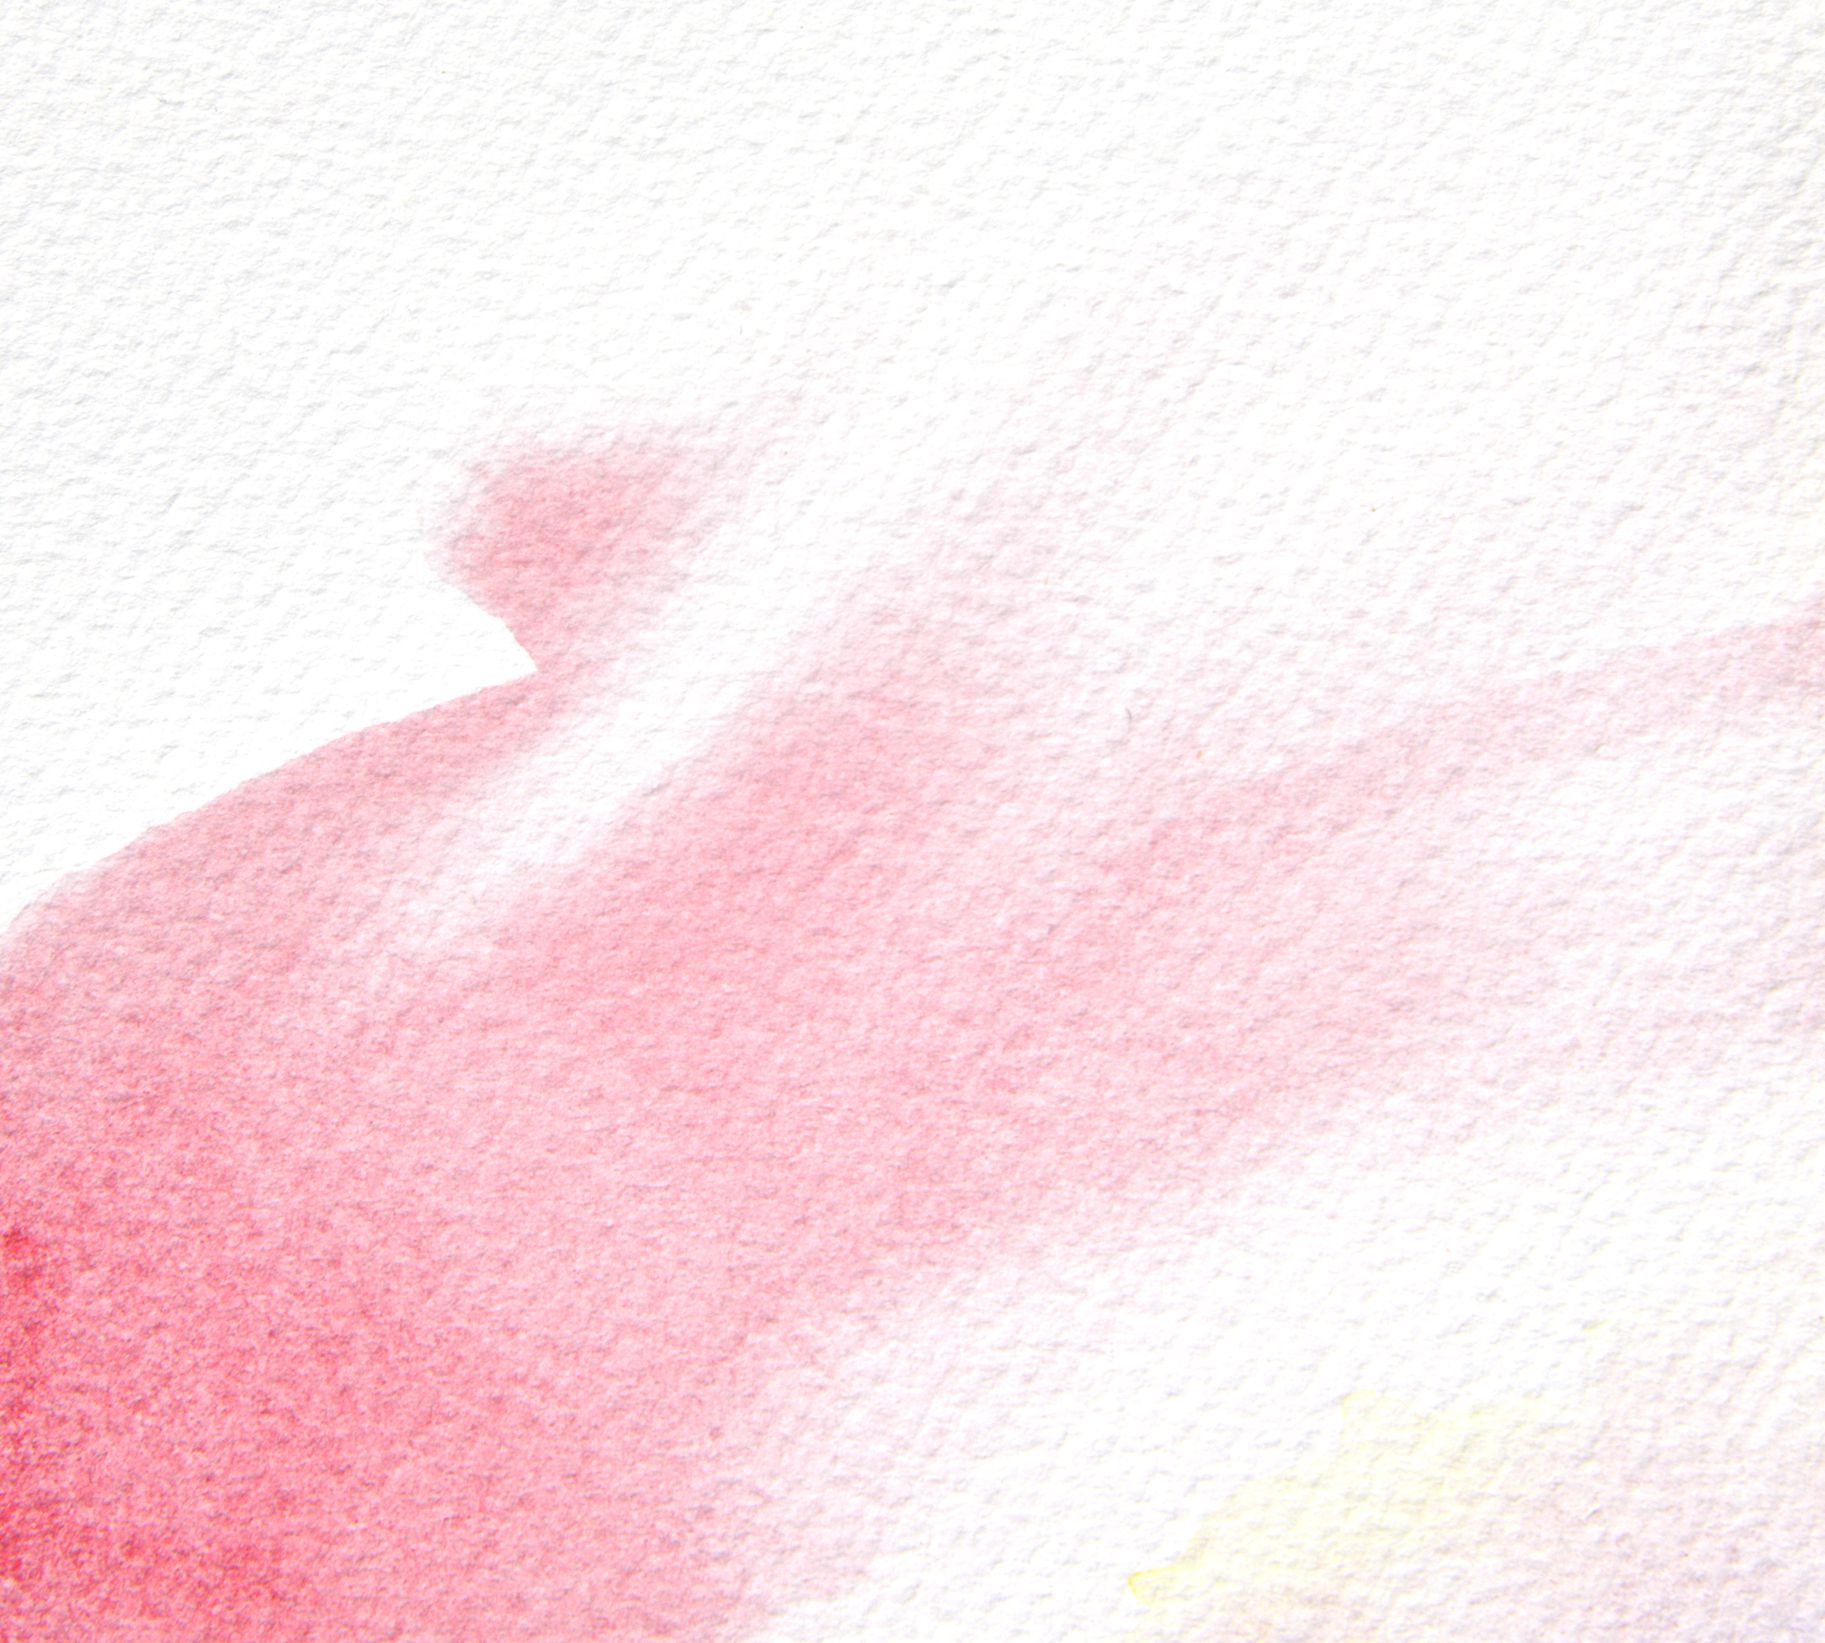 watercolor paper Check out creative inspirations from our contributing artists.